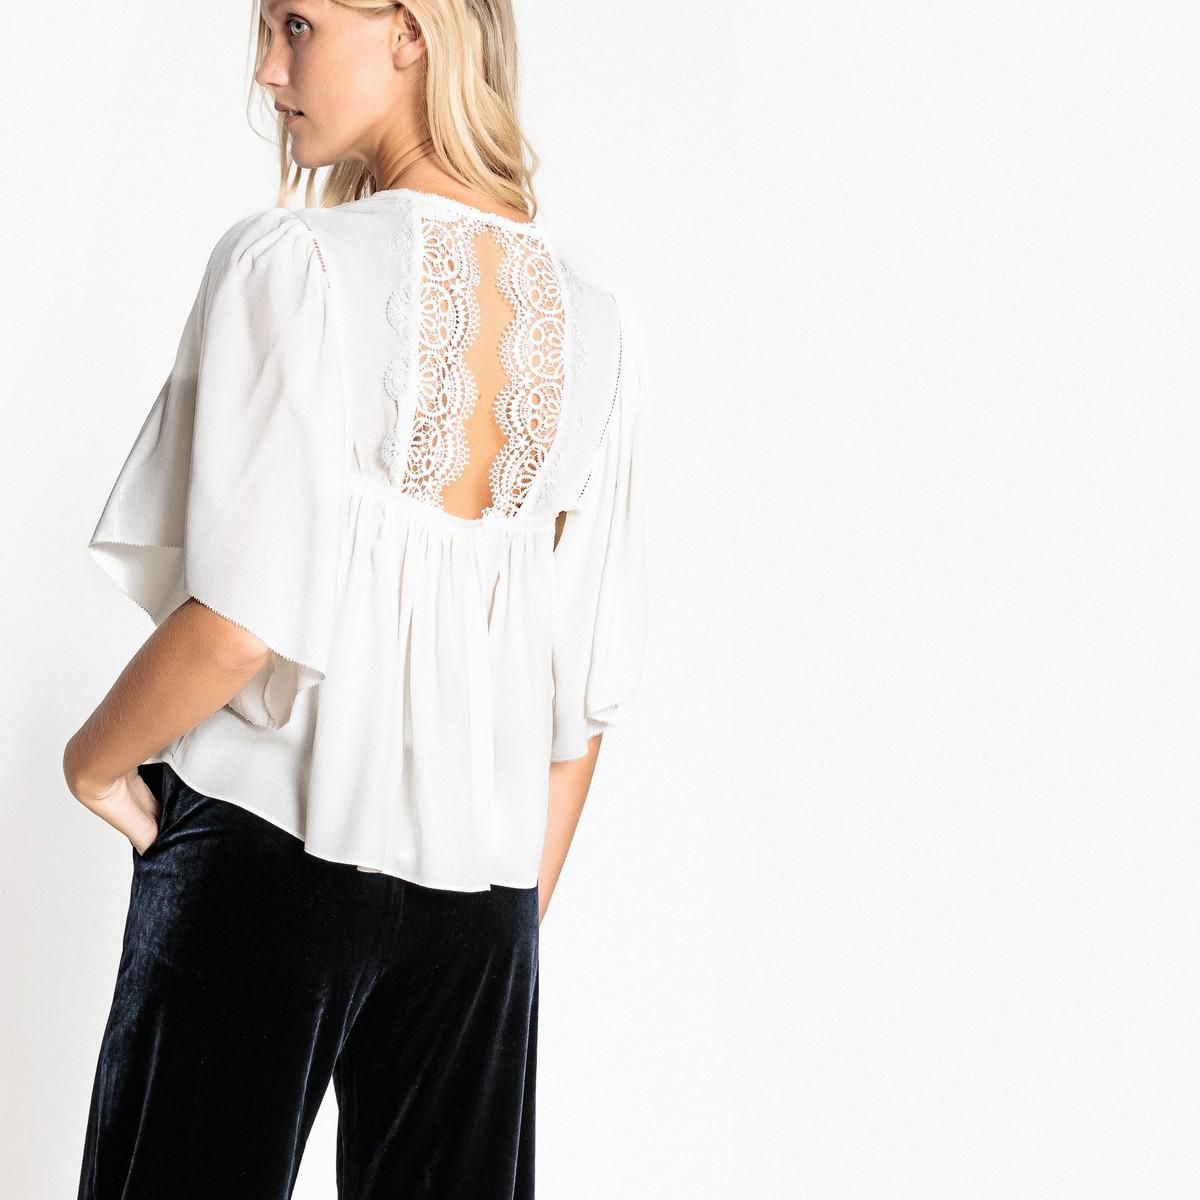 314e4ee3d67bd Lyst - Suncoo Loose-fit Blouse With Lace Detailed Back in White